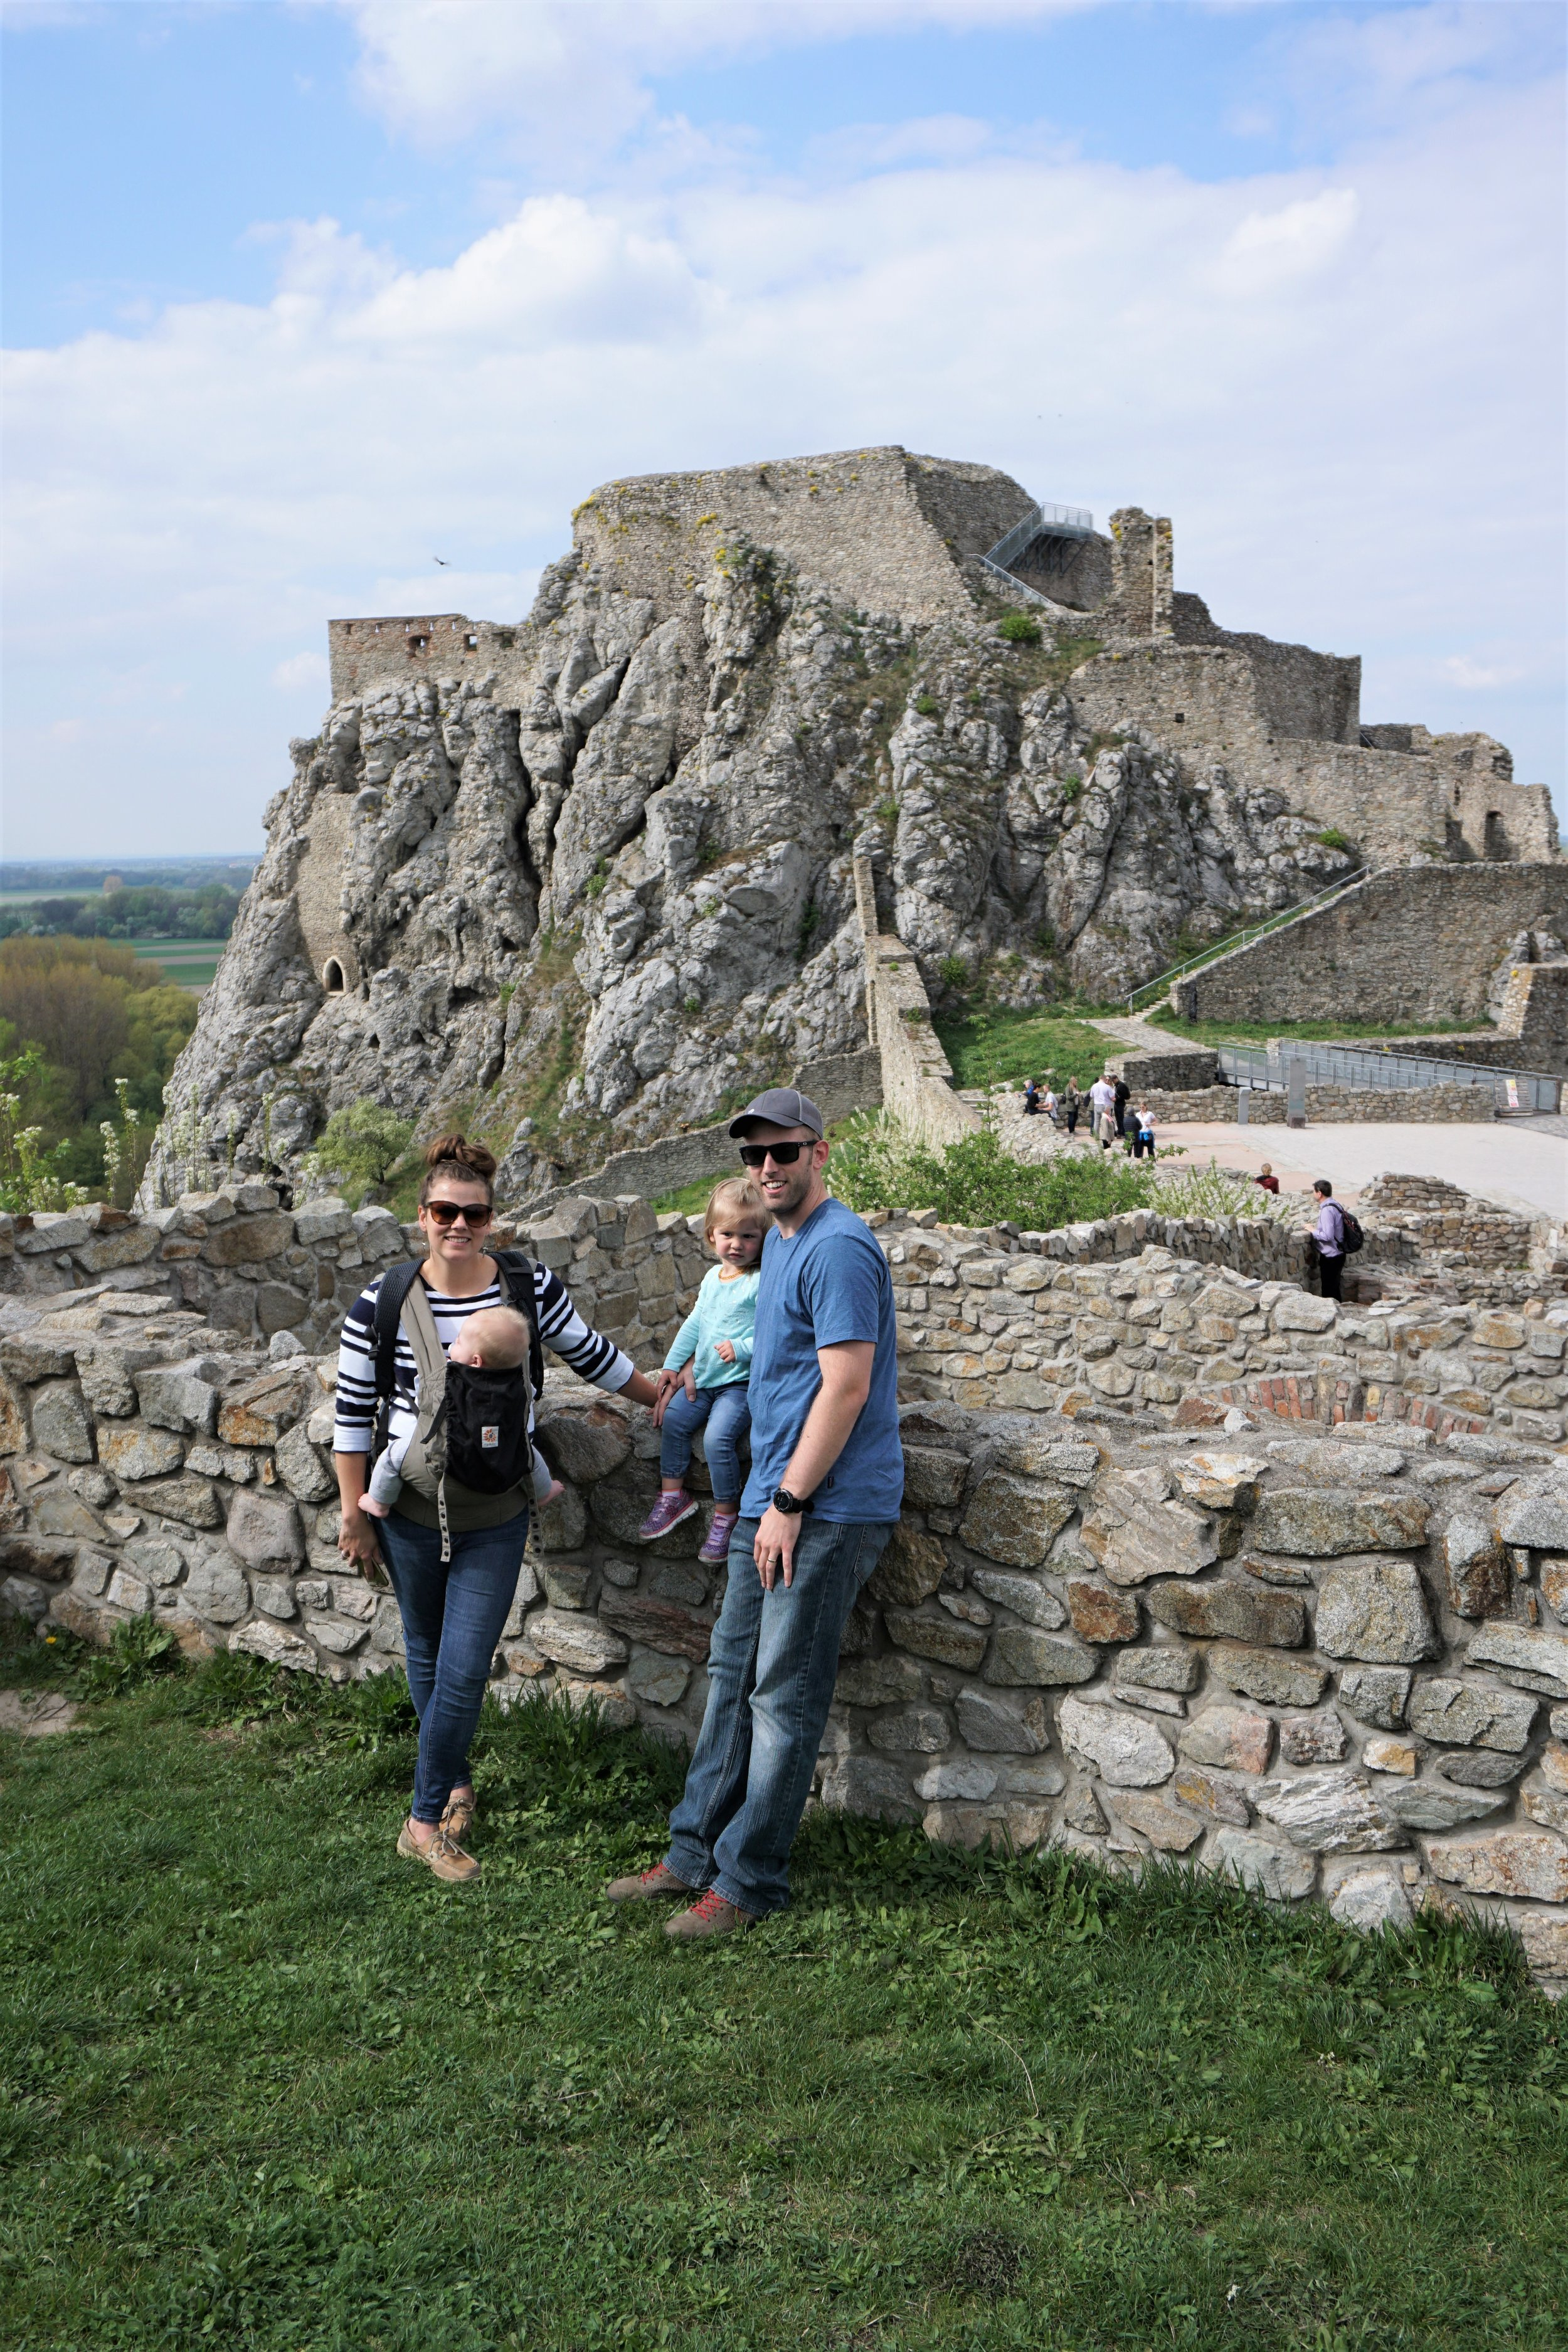 The Nomads reunited at Devin Castle in Slovakia